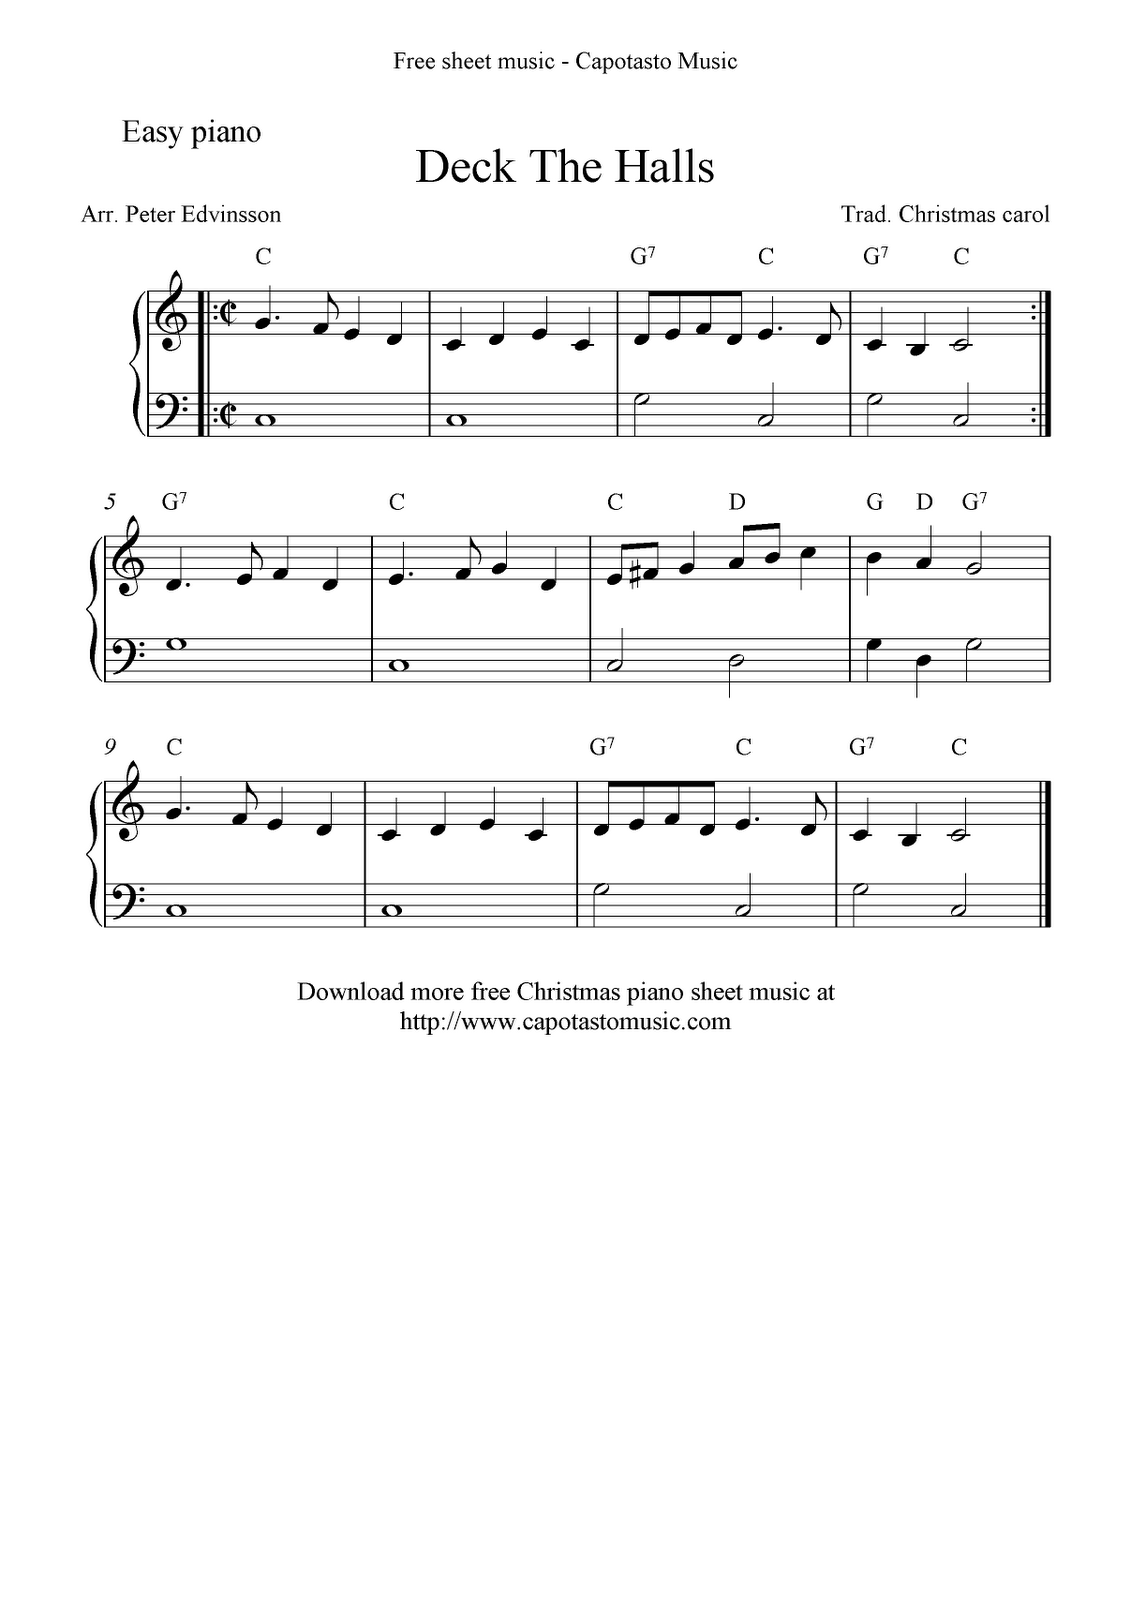 Deck the halls piano sheet music letters